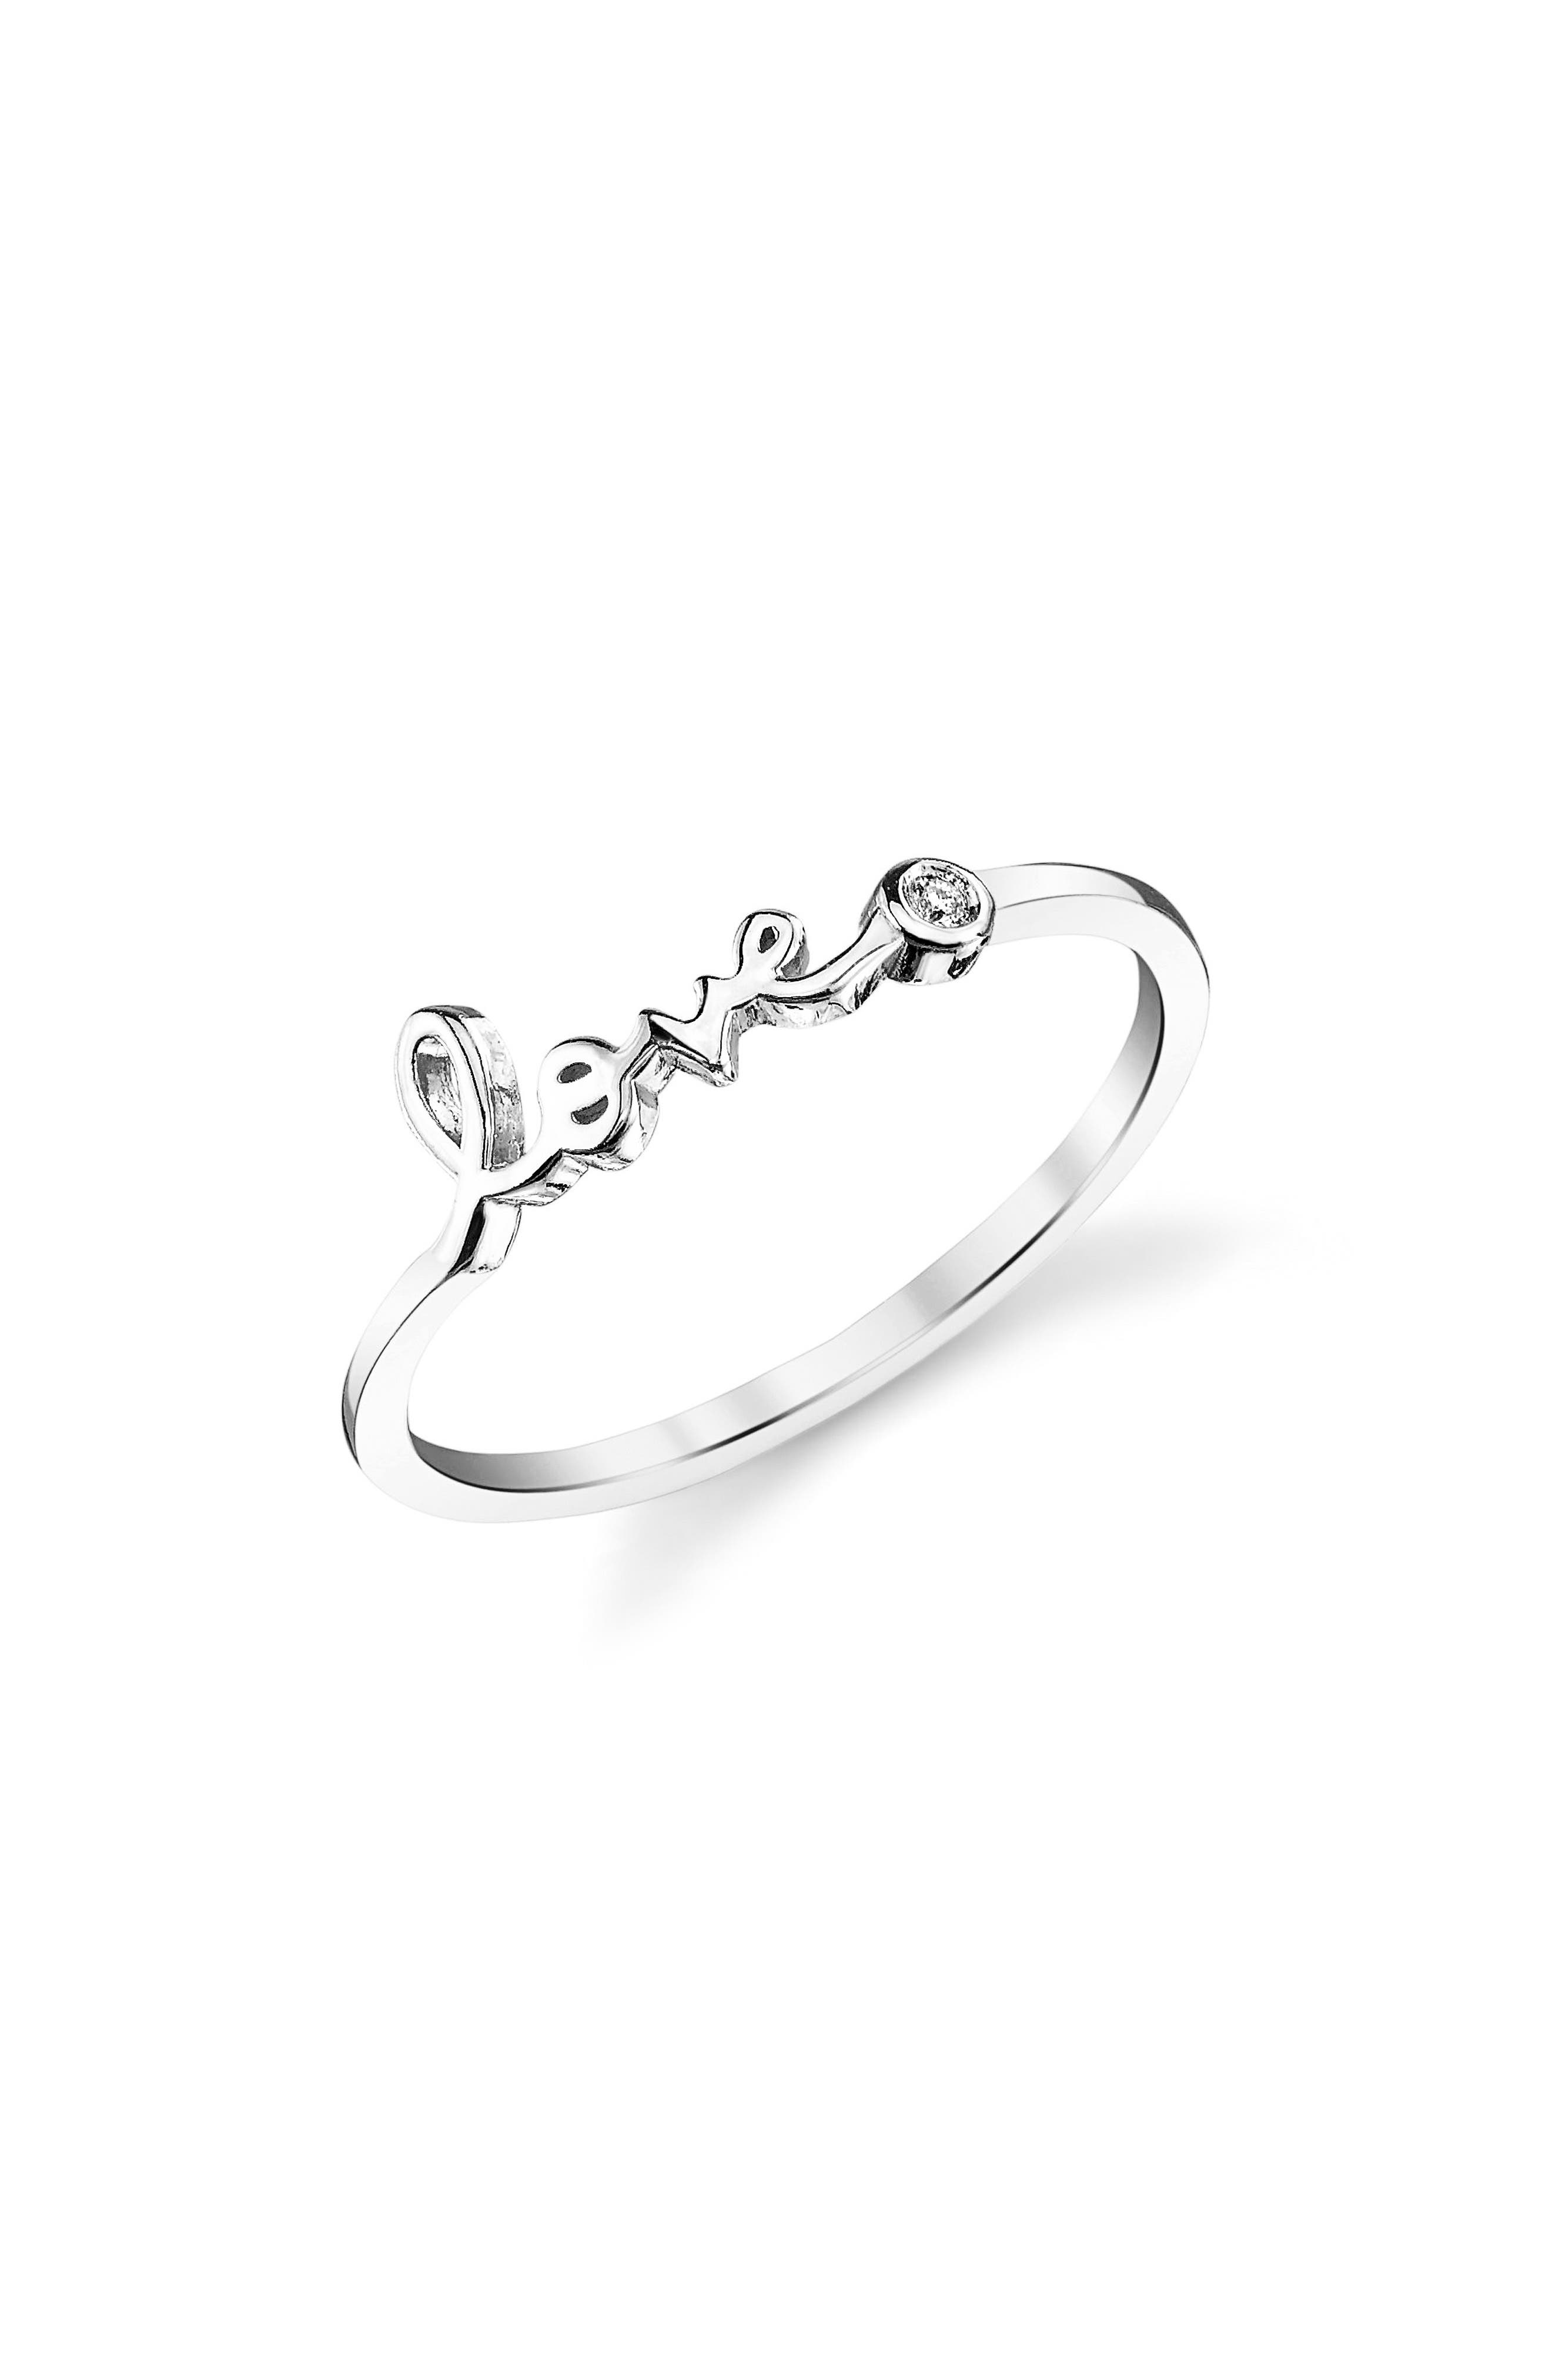 'Love' Ring,                         Main,                         color, White Gold